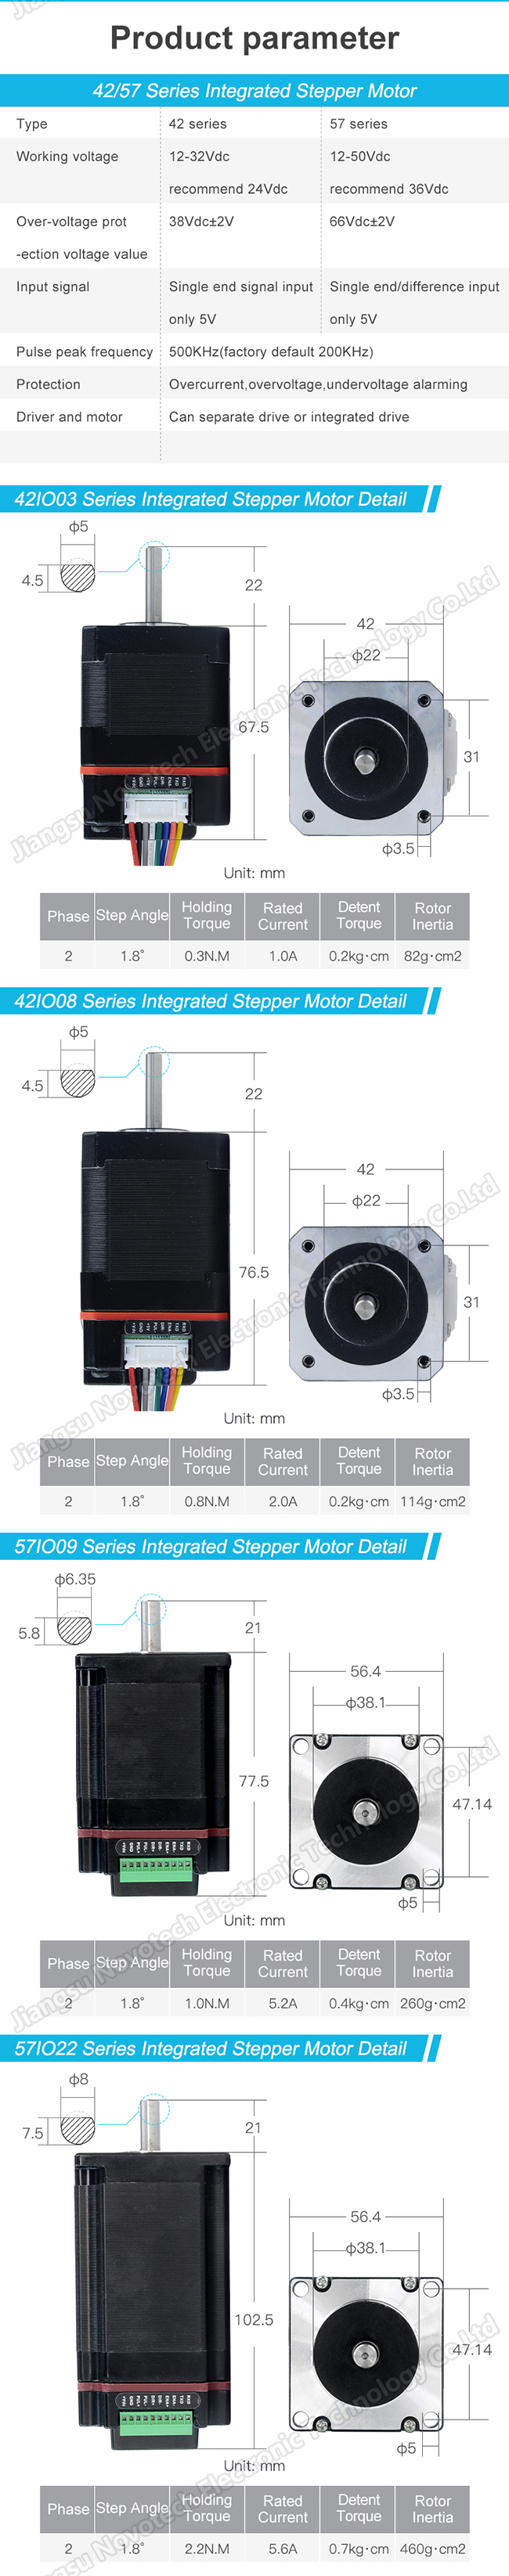 Stepper Motor With Controller.jpg